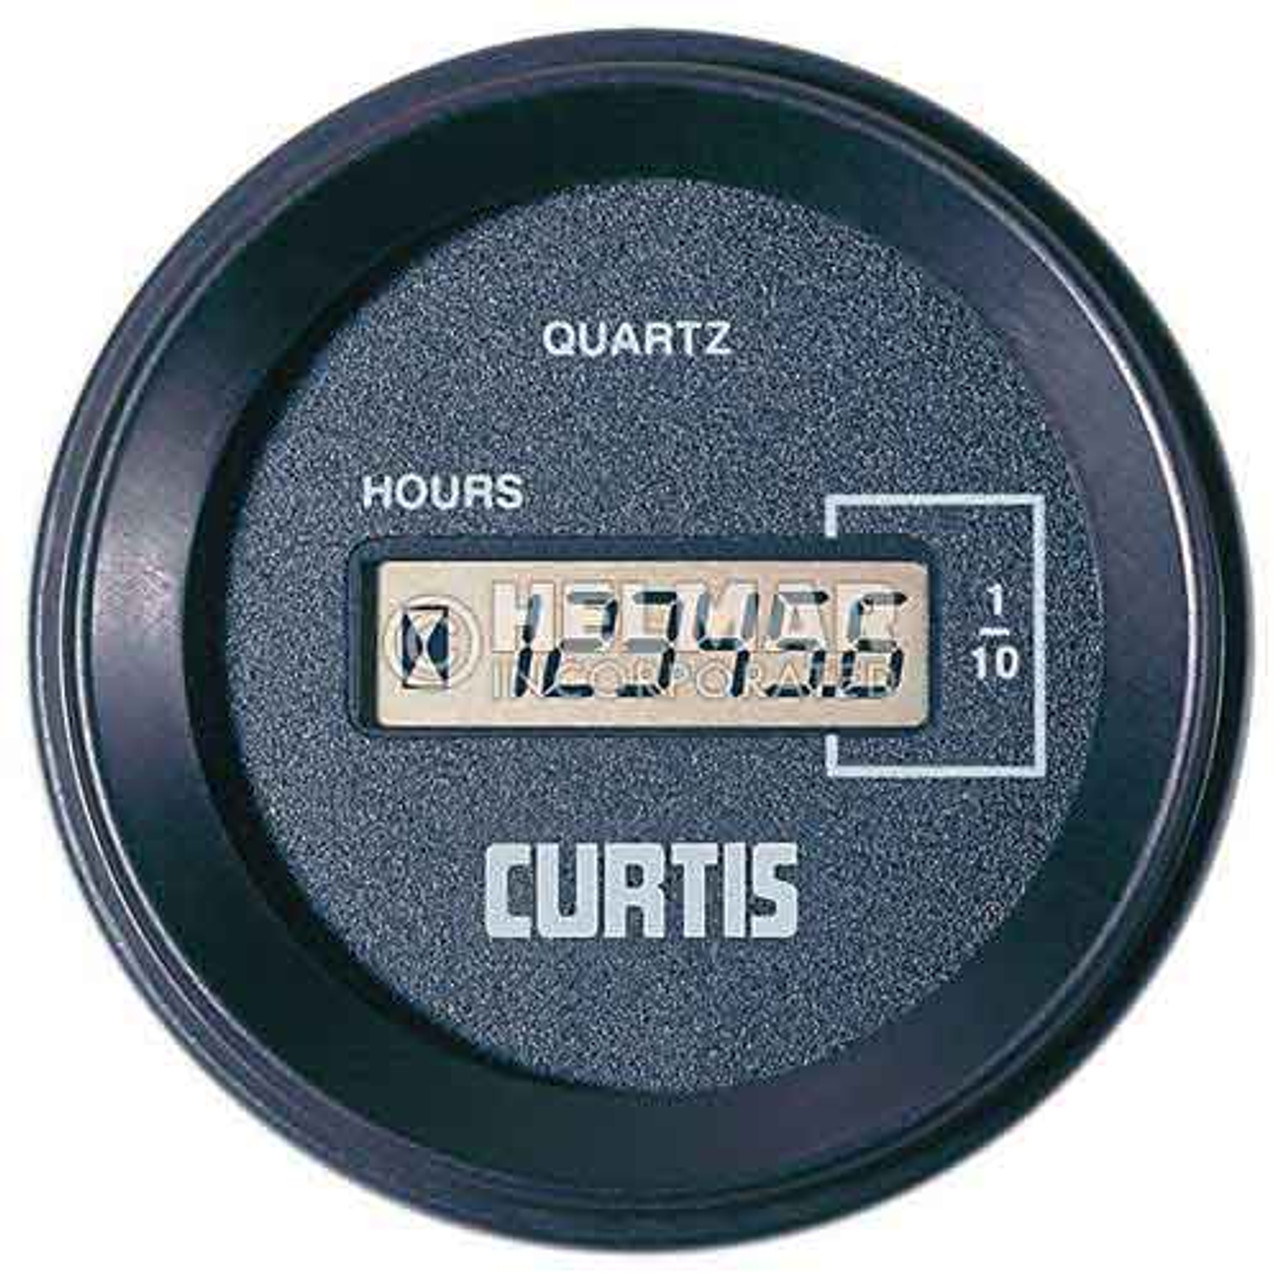 701RN00101248D Curtis 700 Series Solid State Hour Meter and Counter R Case, 12-48 Volts